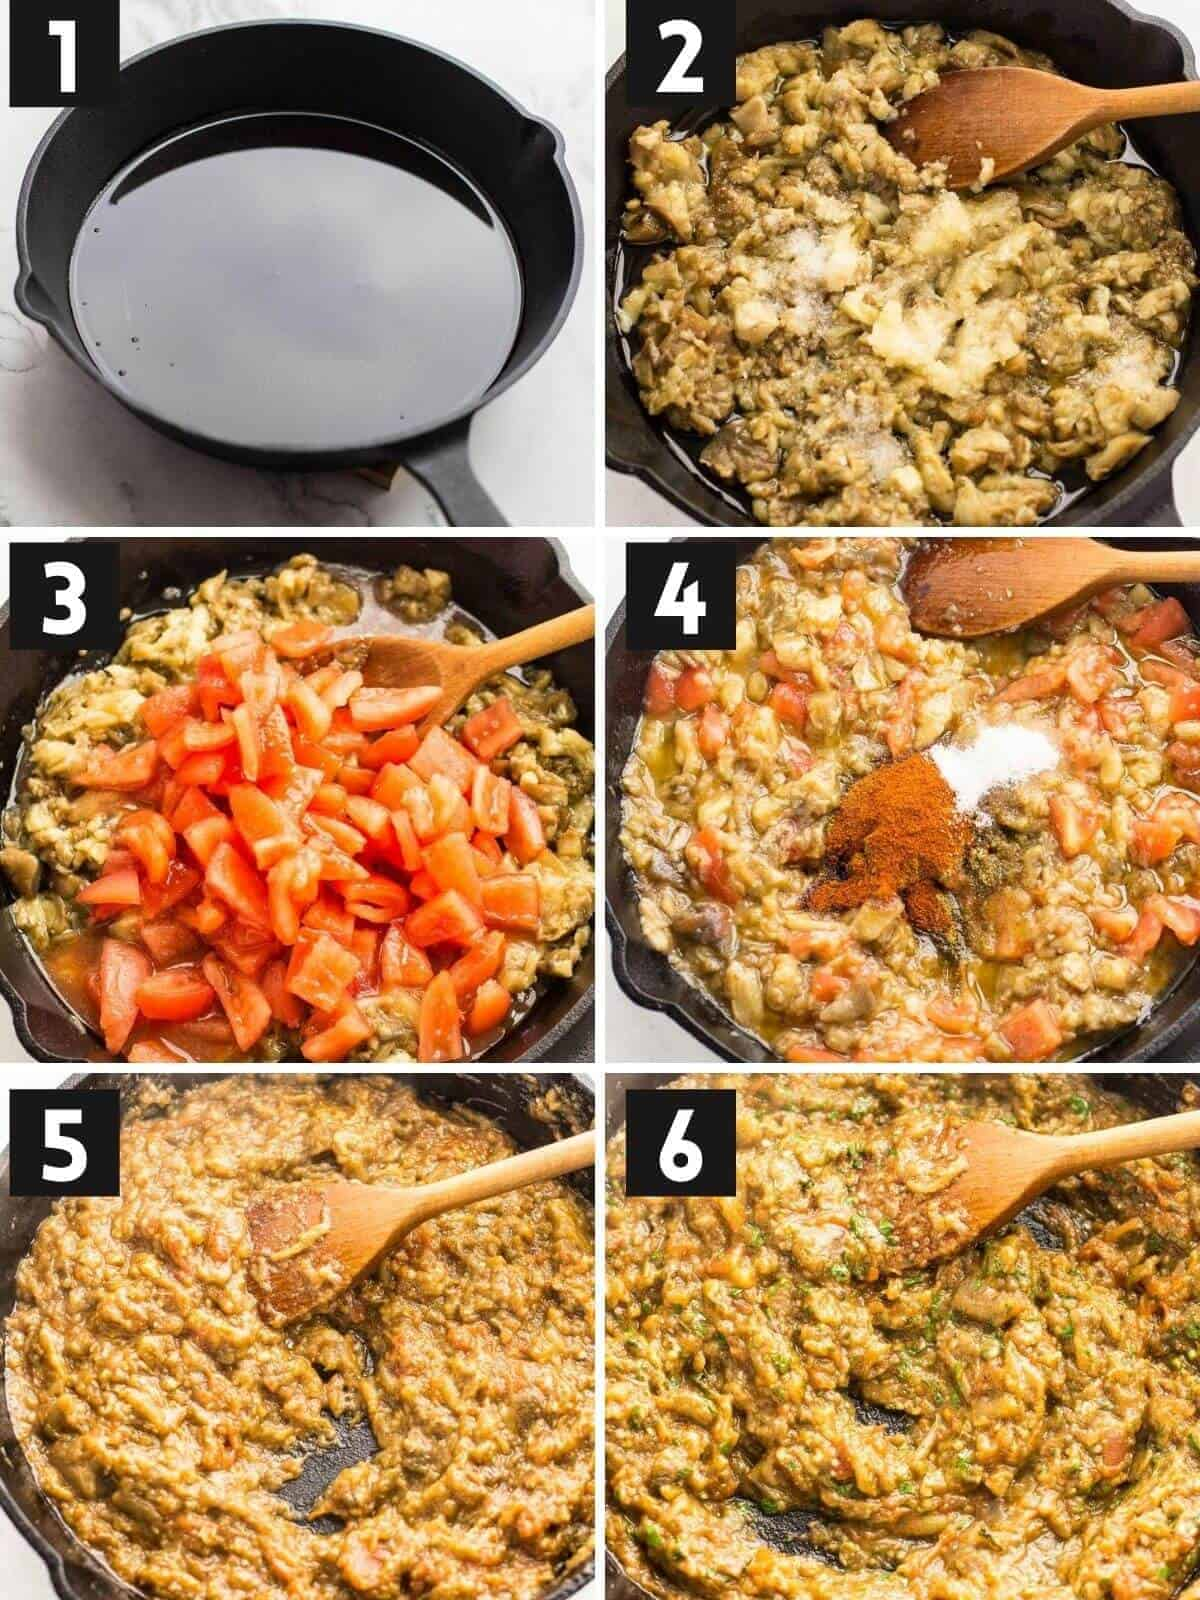 picture steps of cooking zaalouk.